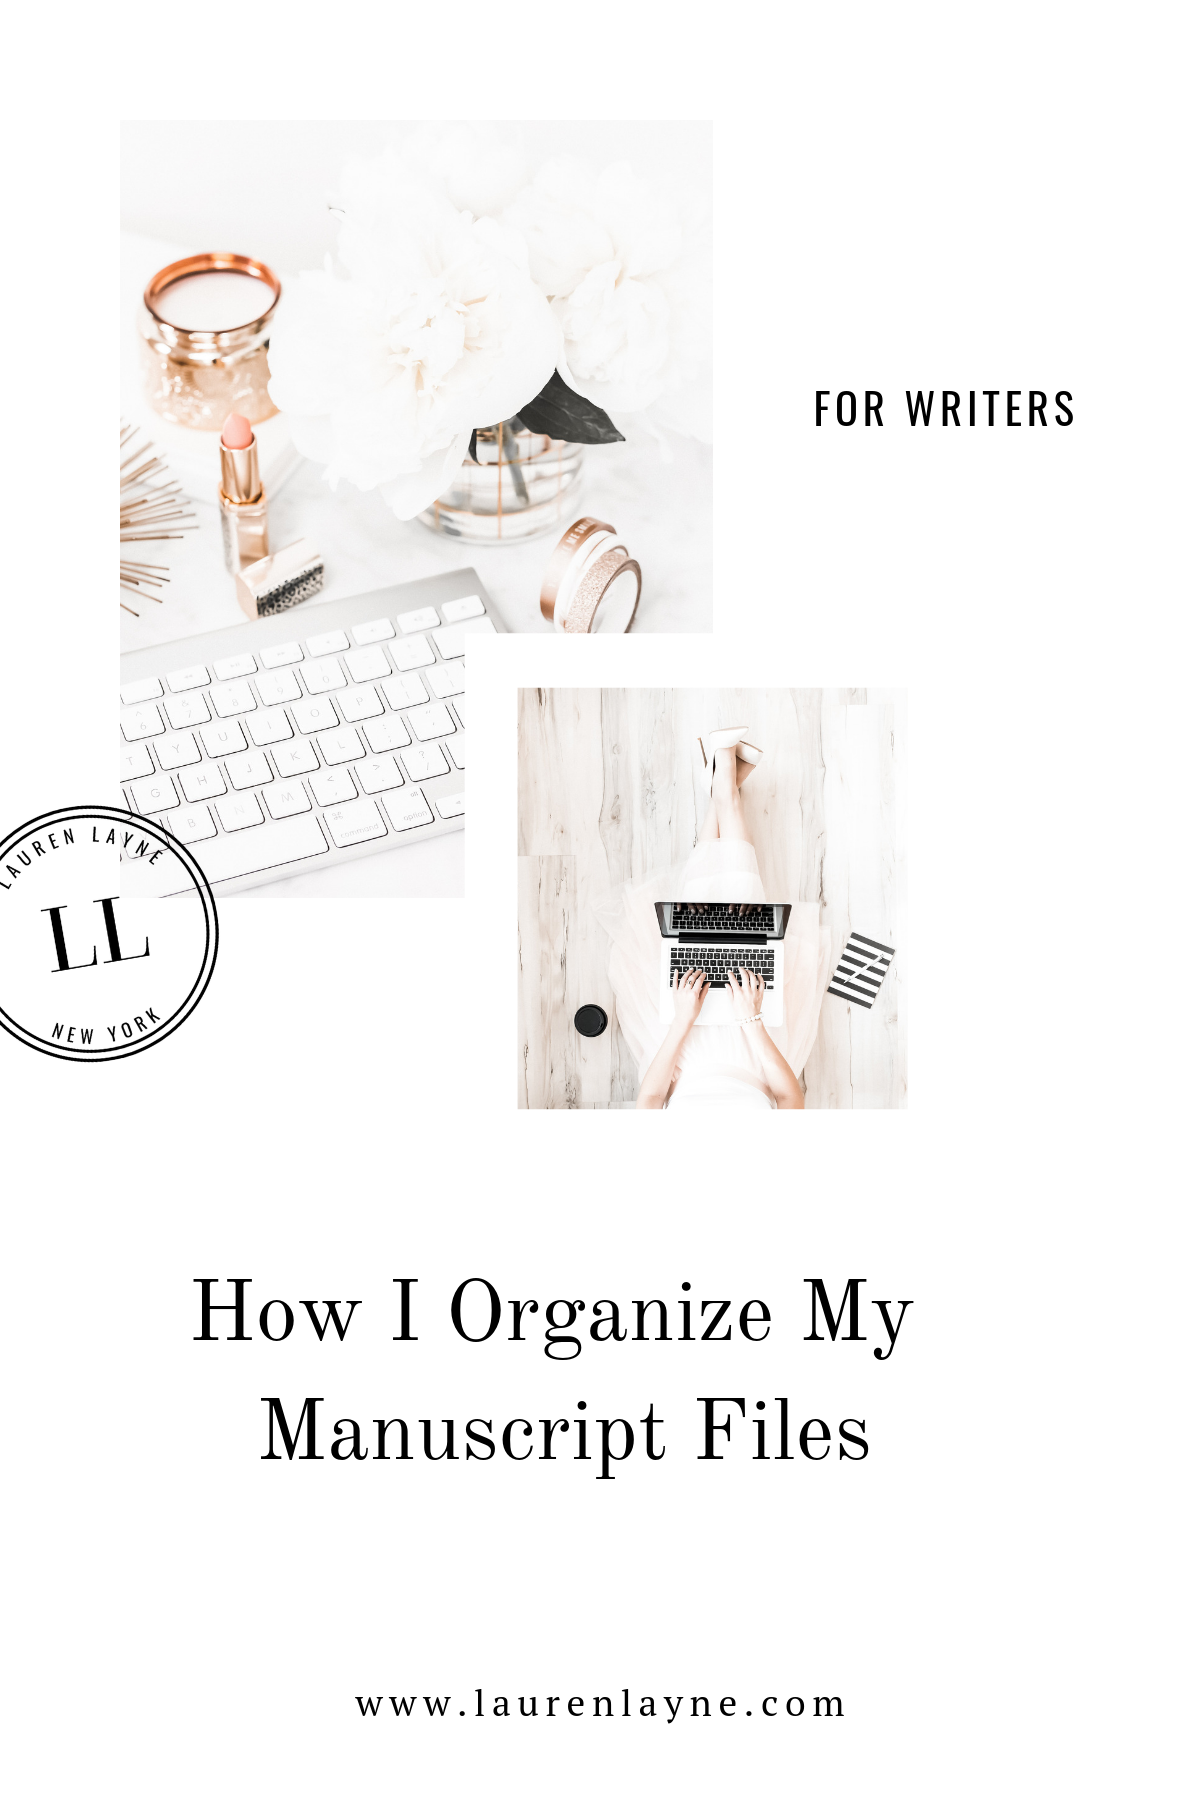 How I Organize My Manuscript Files